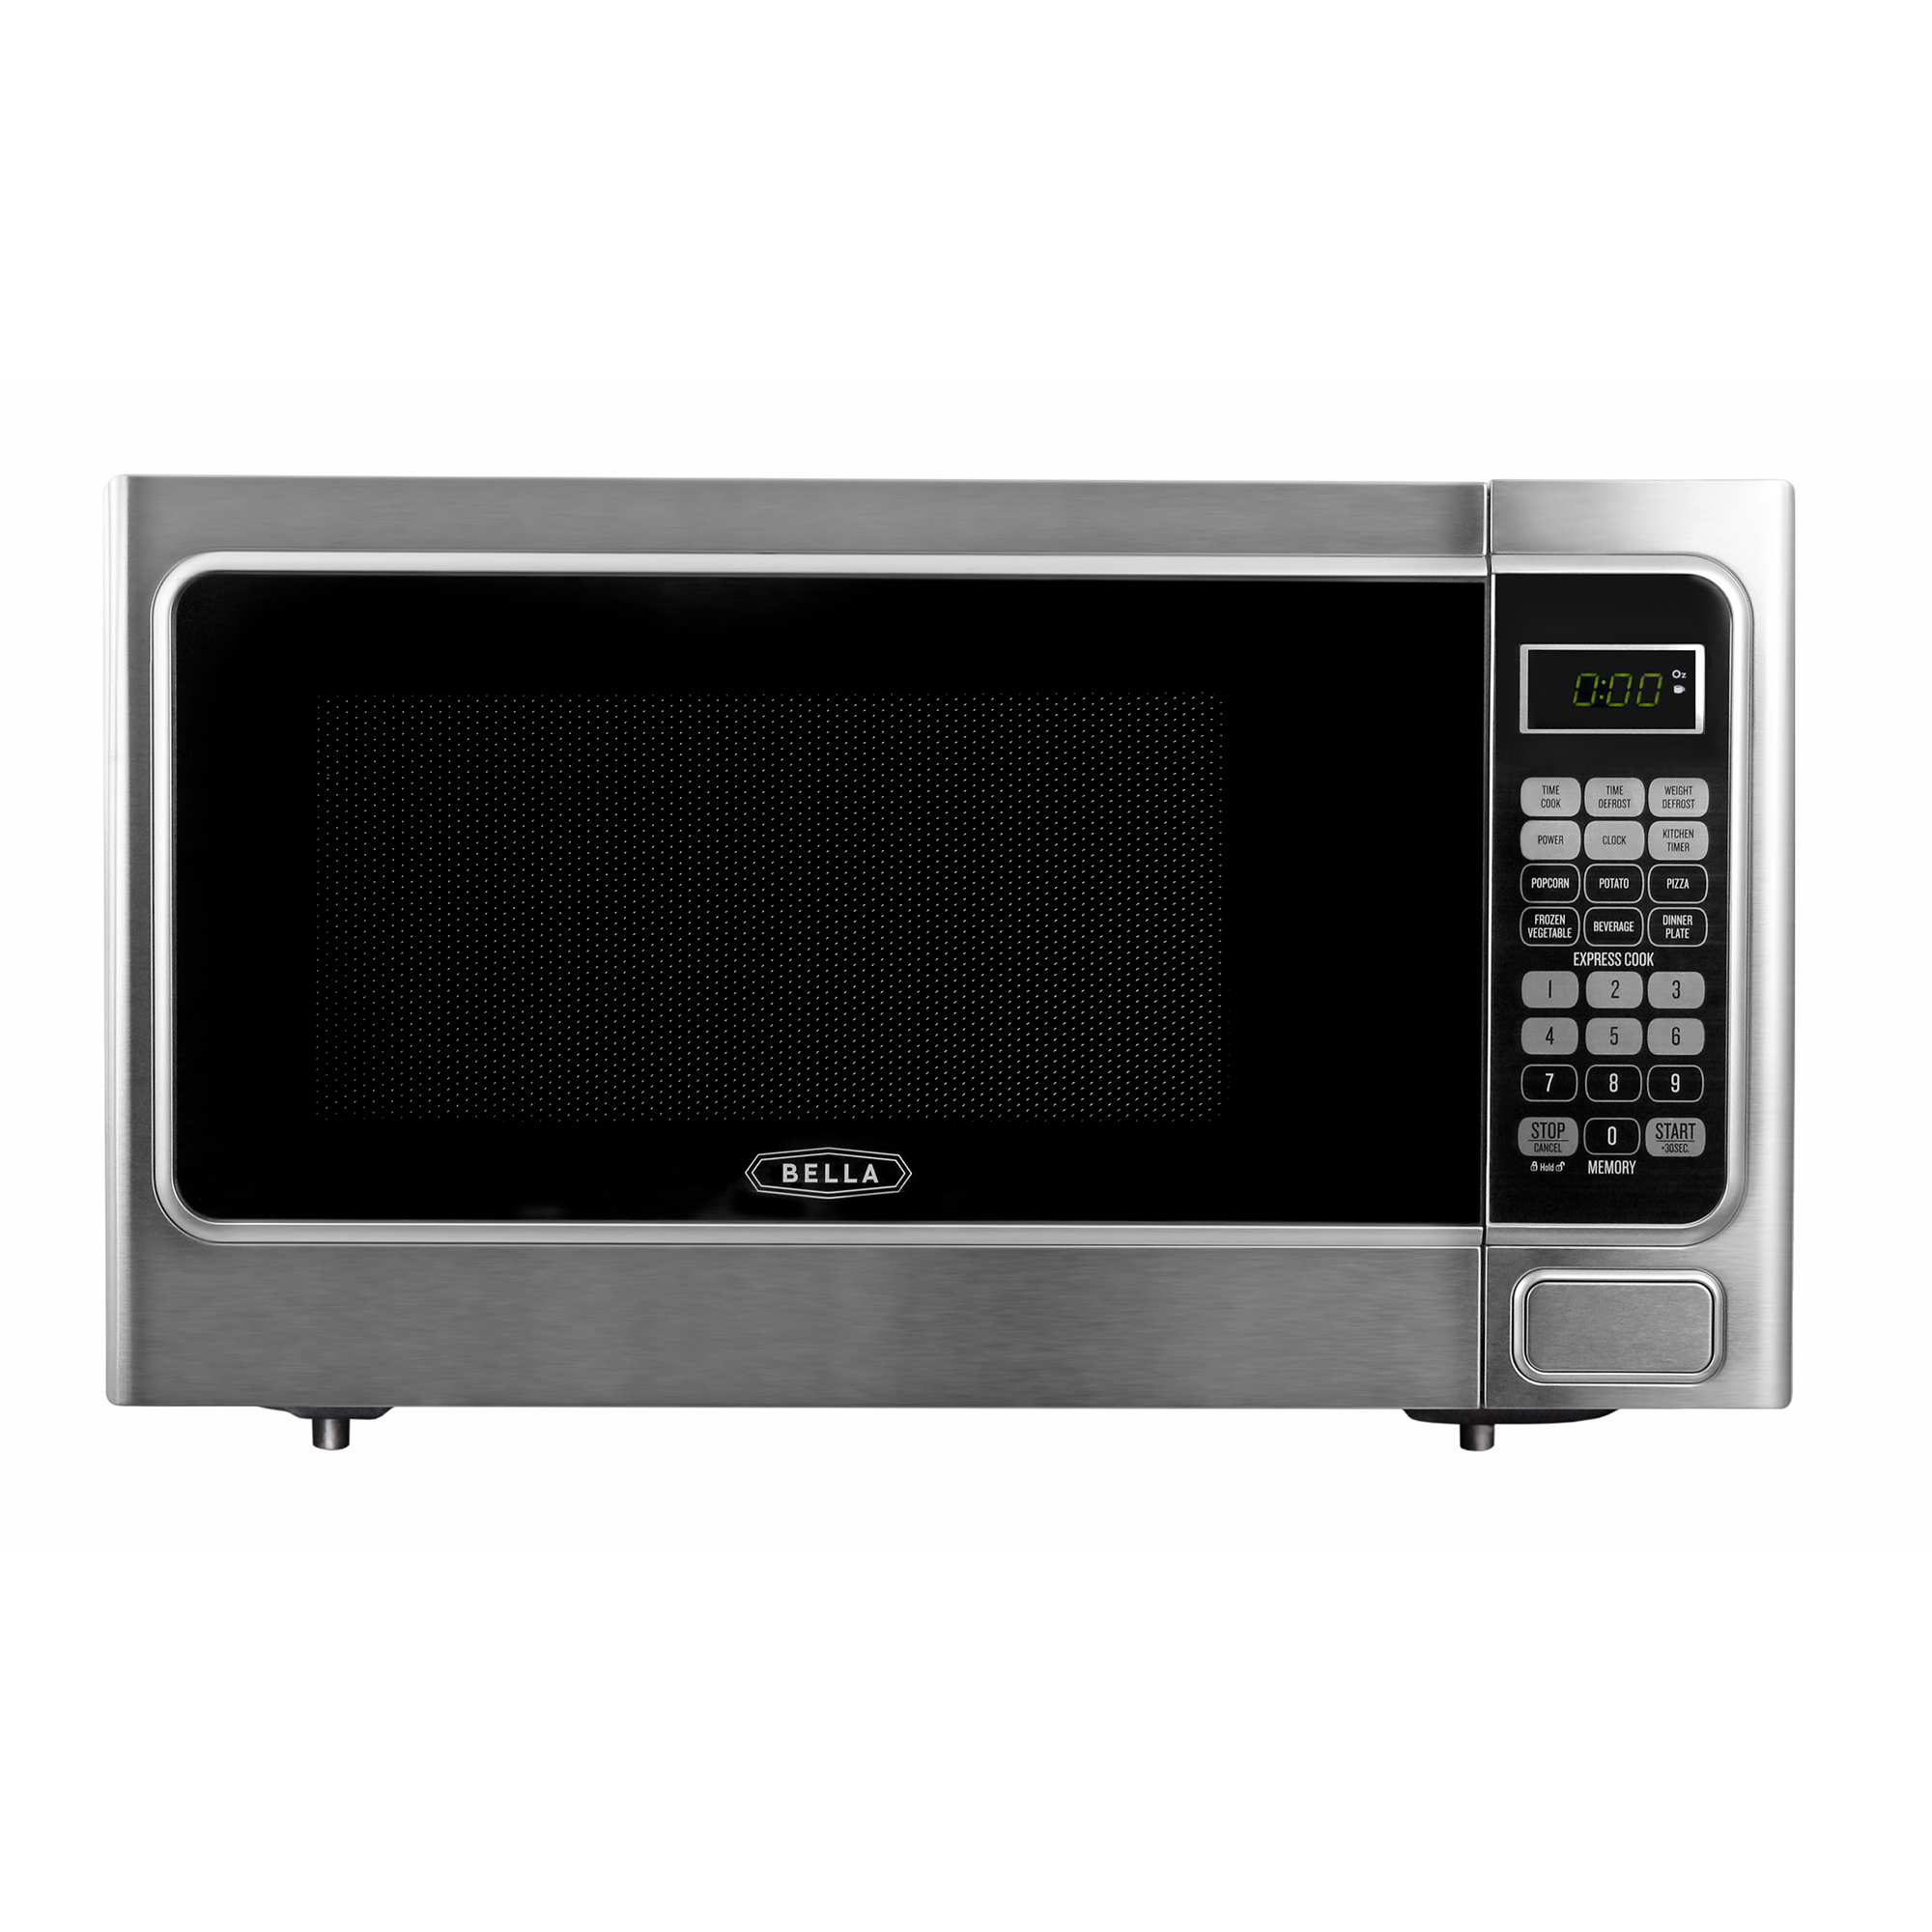 Bella 1.1 Cubic Foot 1000 Watt Microwave Oven in Platinum with Chrome